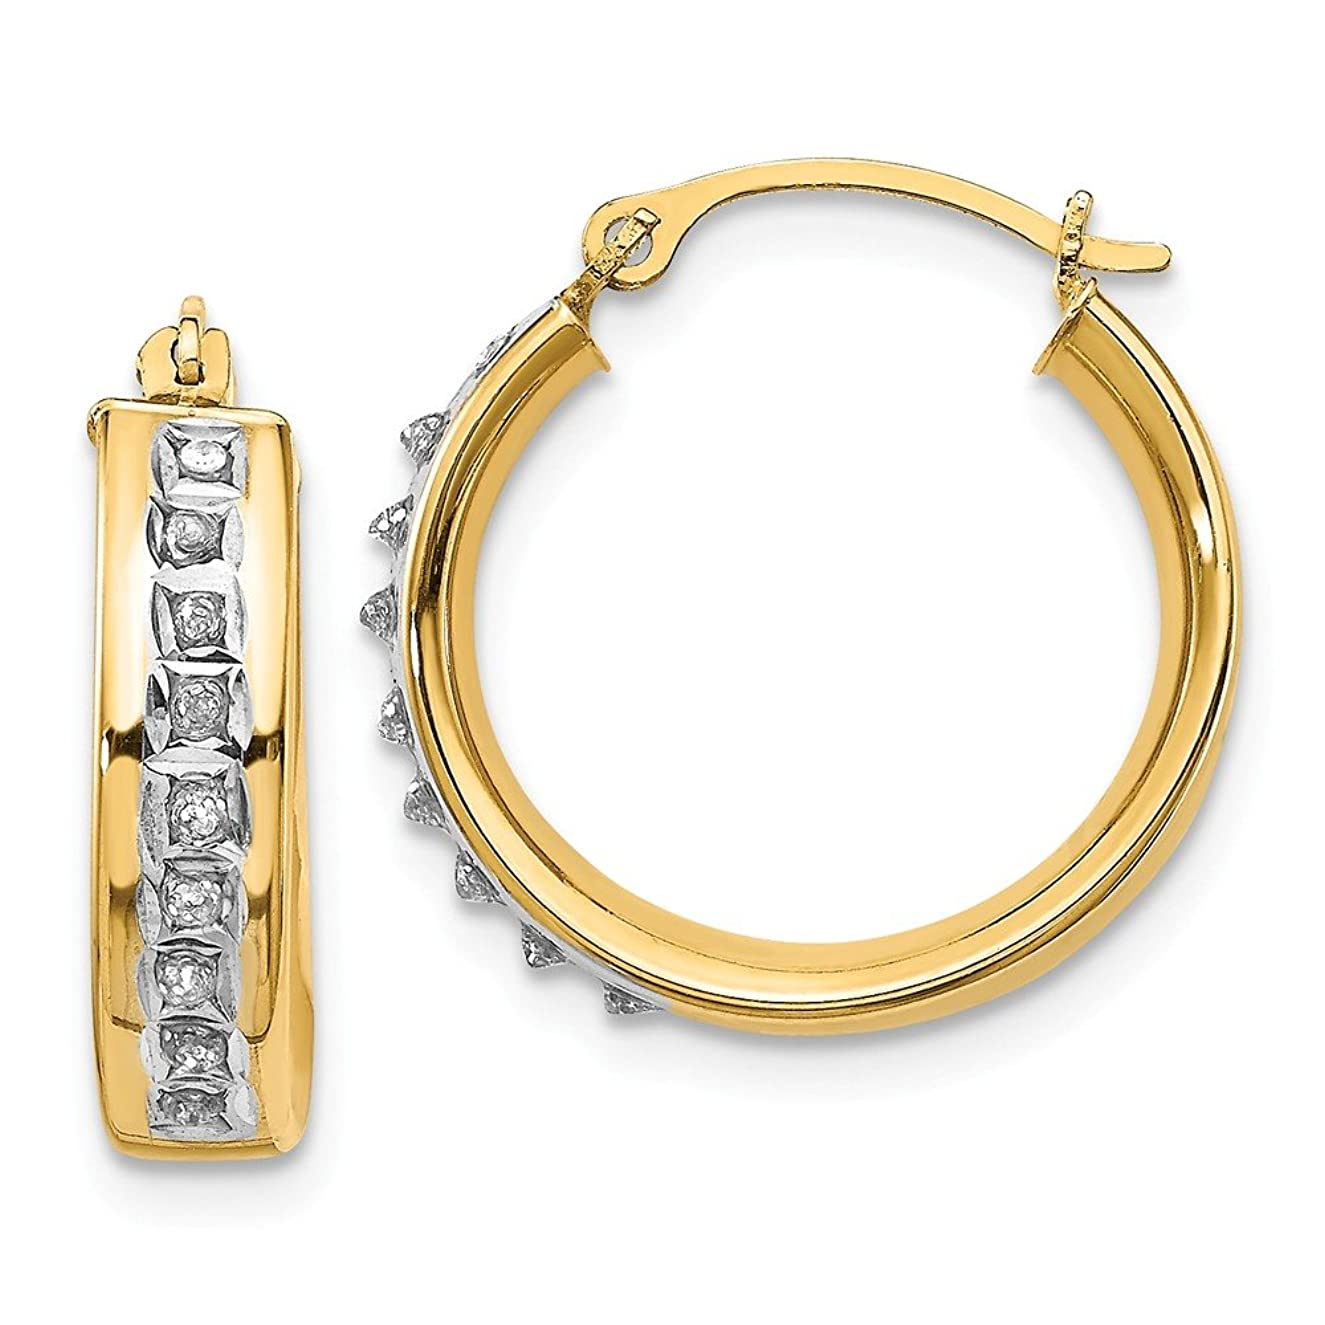 14k Yellow Gold Diamond Fascination Round Hinged Post Stud Hoop Earrings Ear Hoops Set Fine Jewelry Gifts For Women For Her